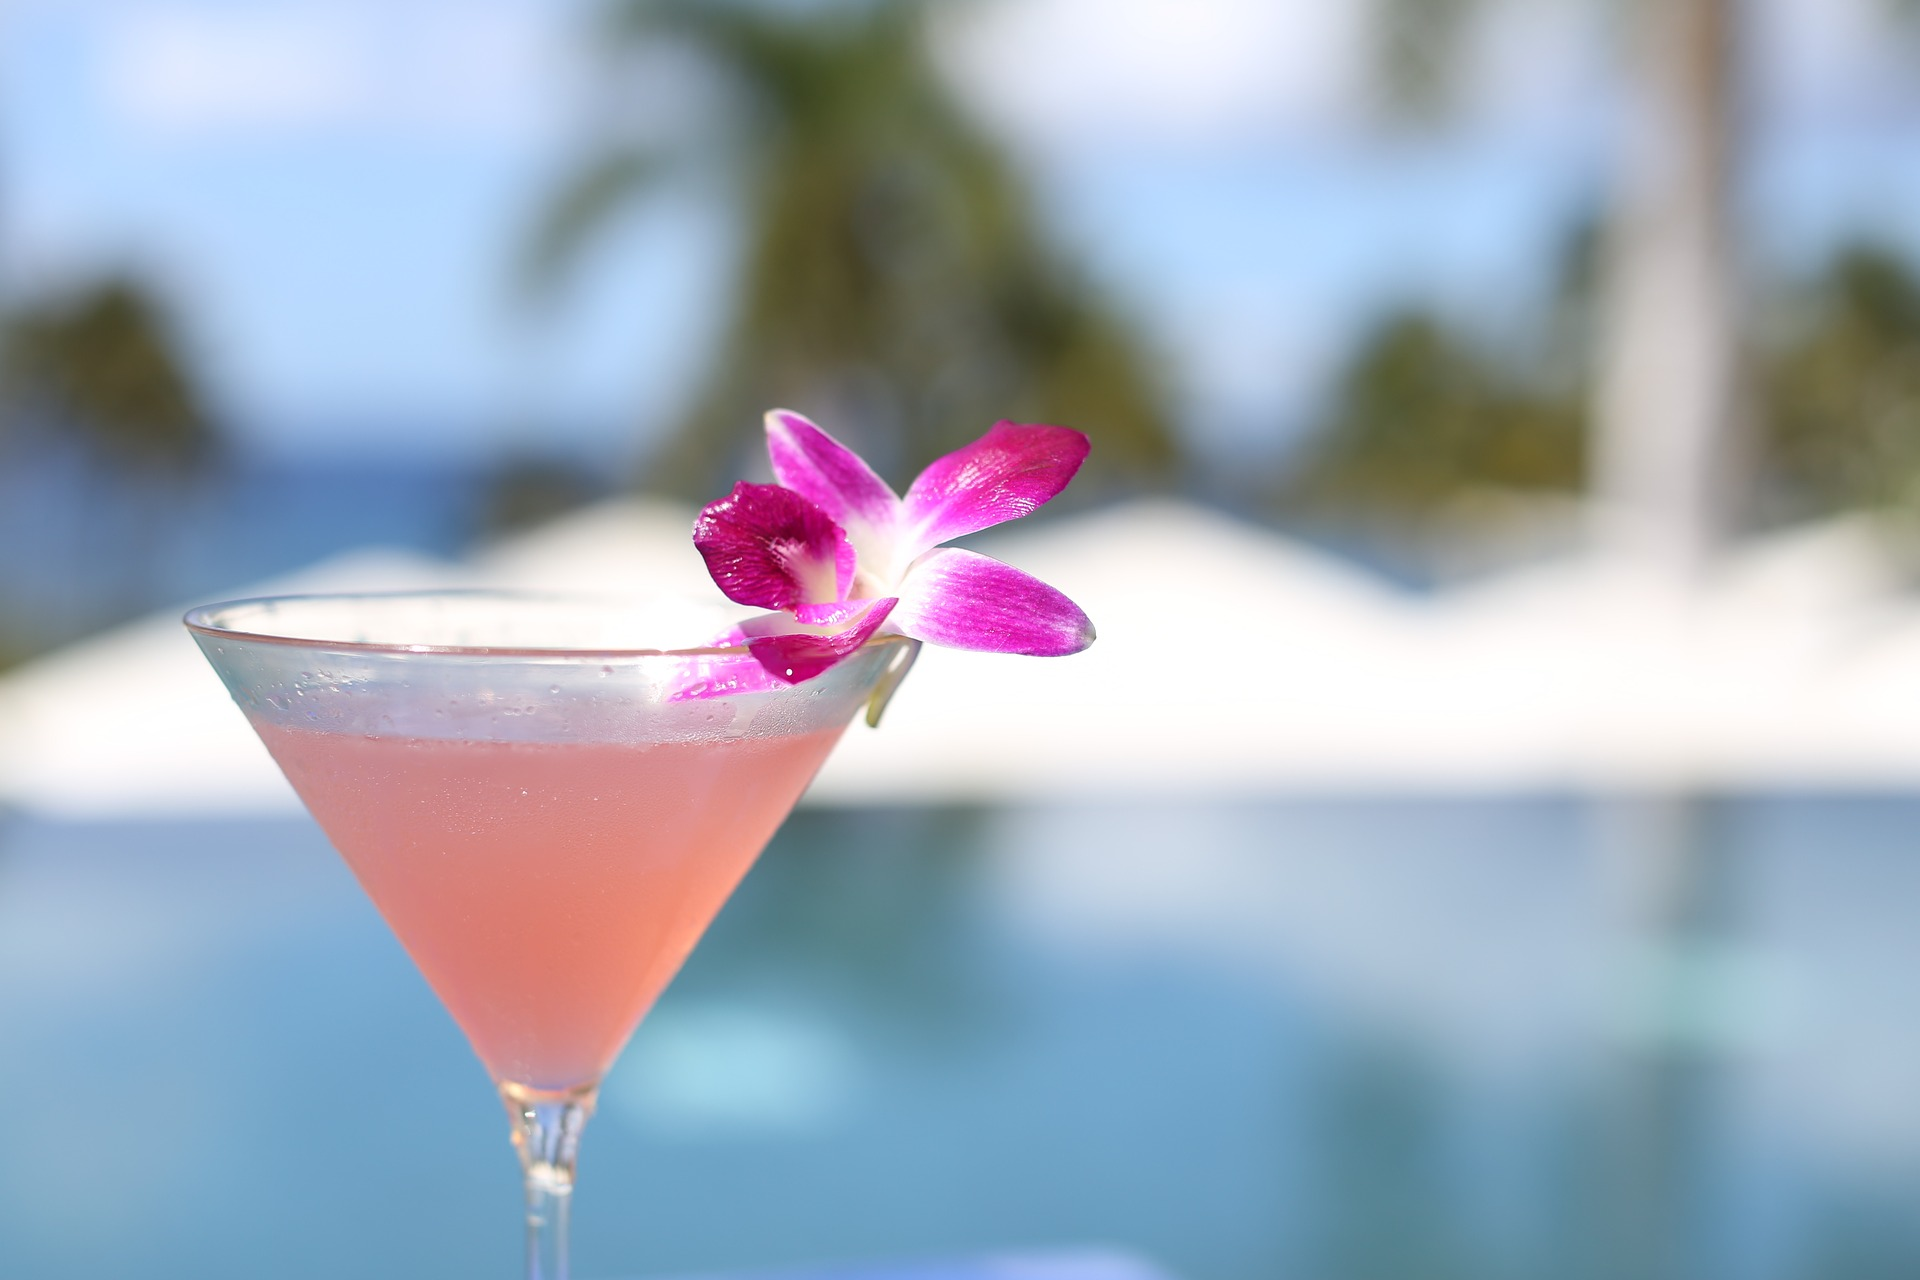 cocktail-2282032_1920